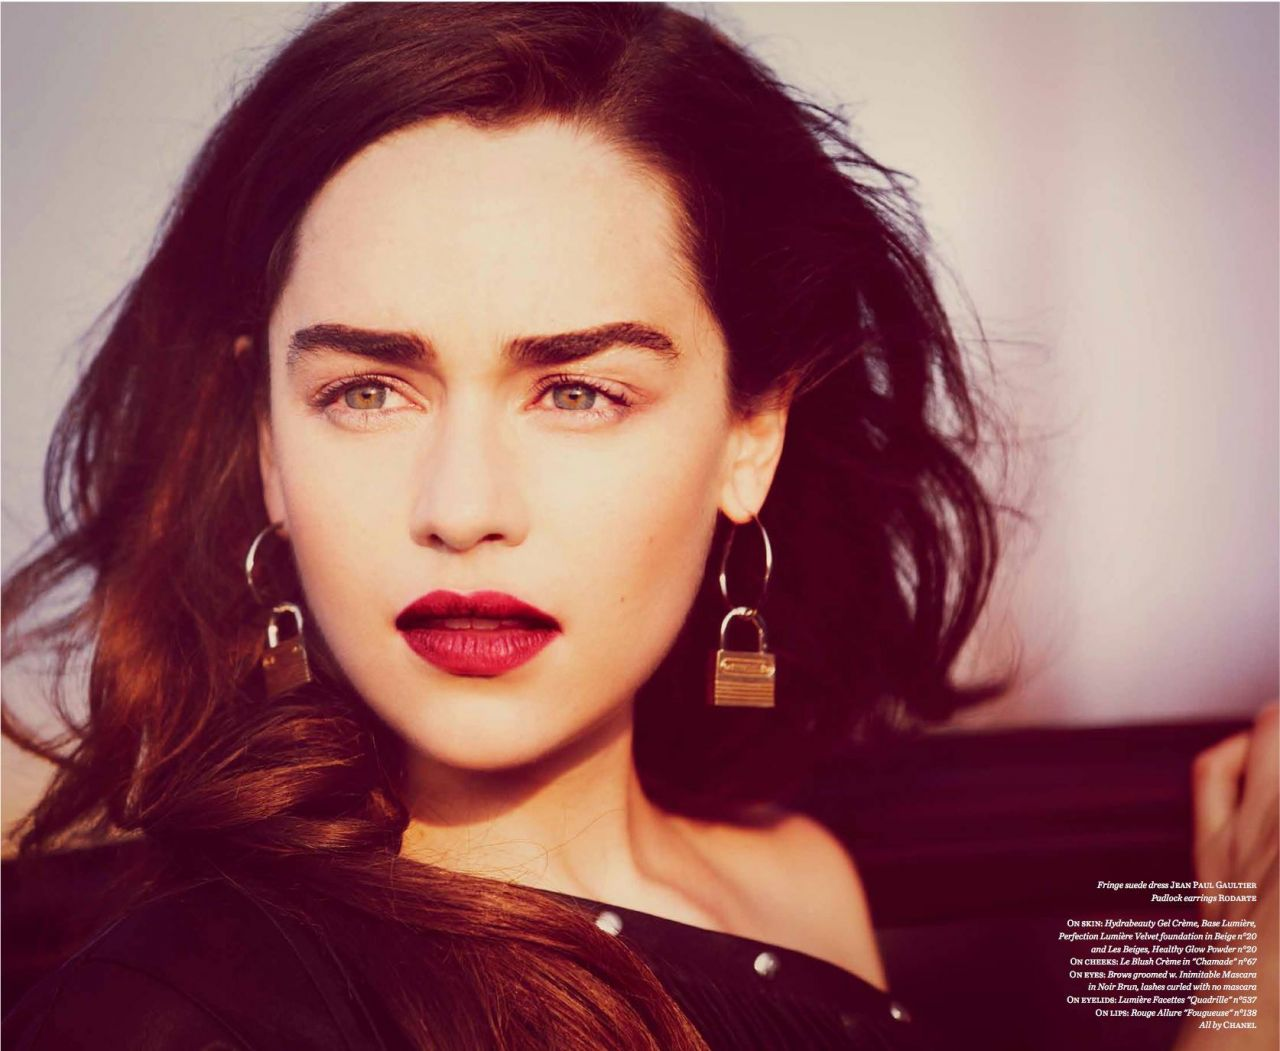 emilia-clarke-vs-magazine-spring-2014-issue_3.jpg